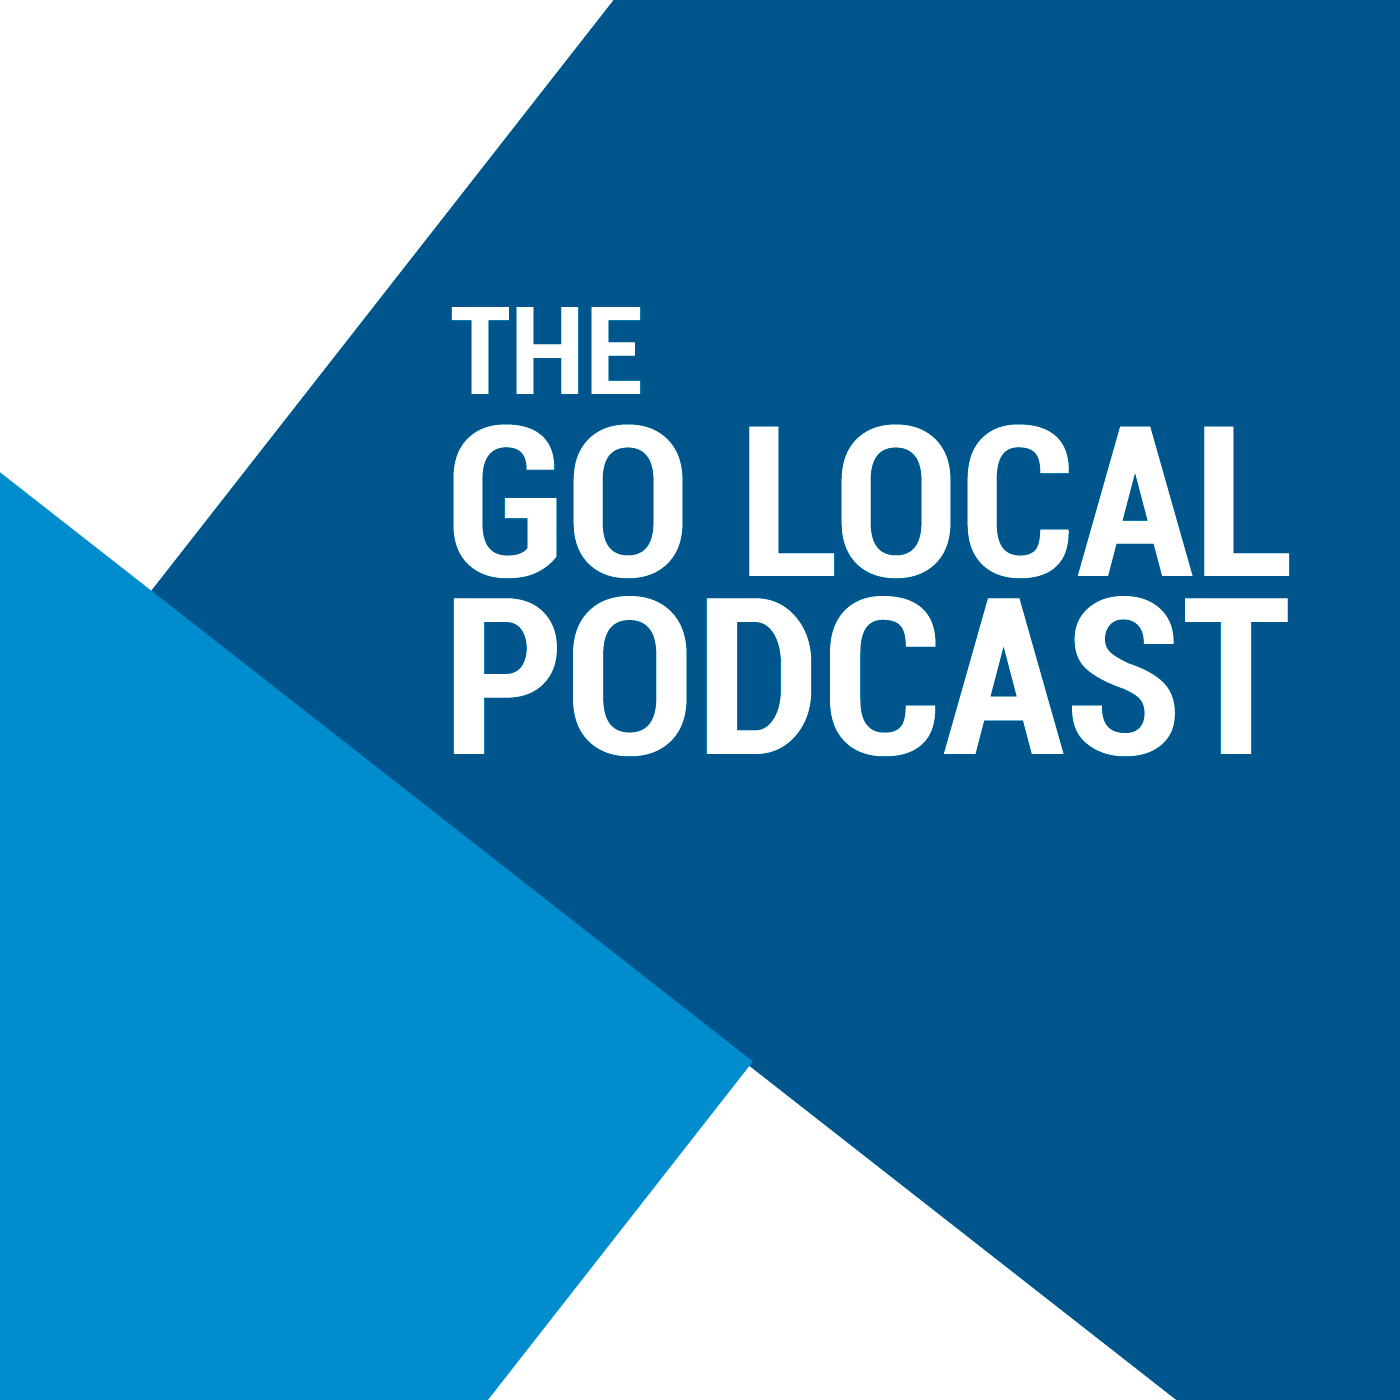 Go Local Podcast